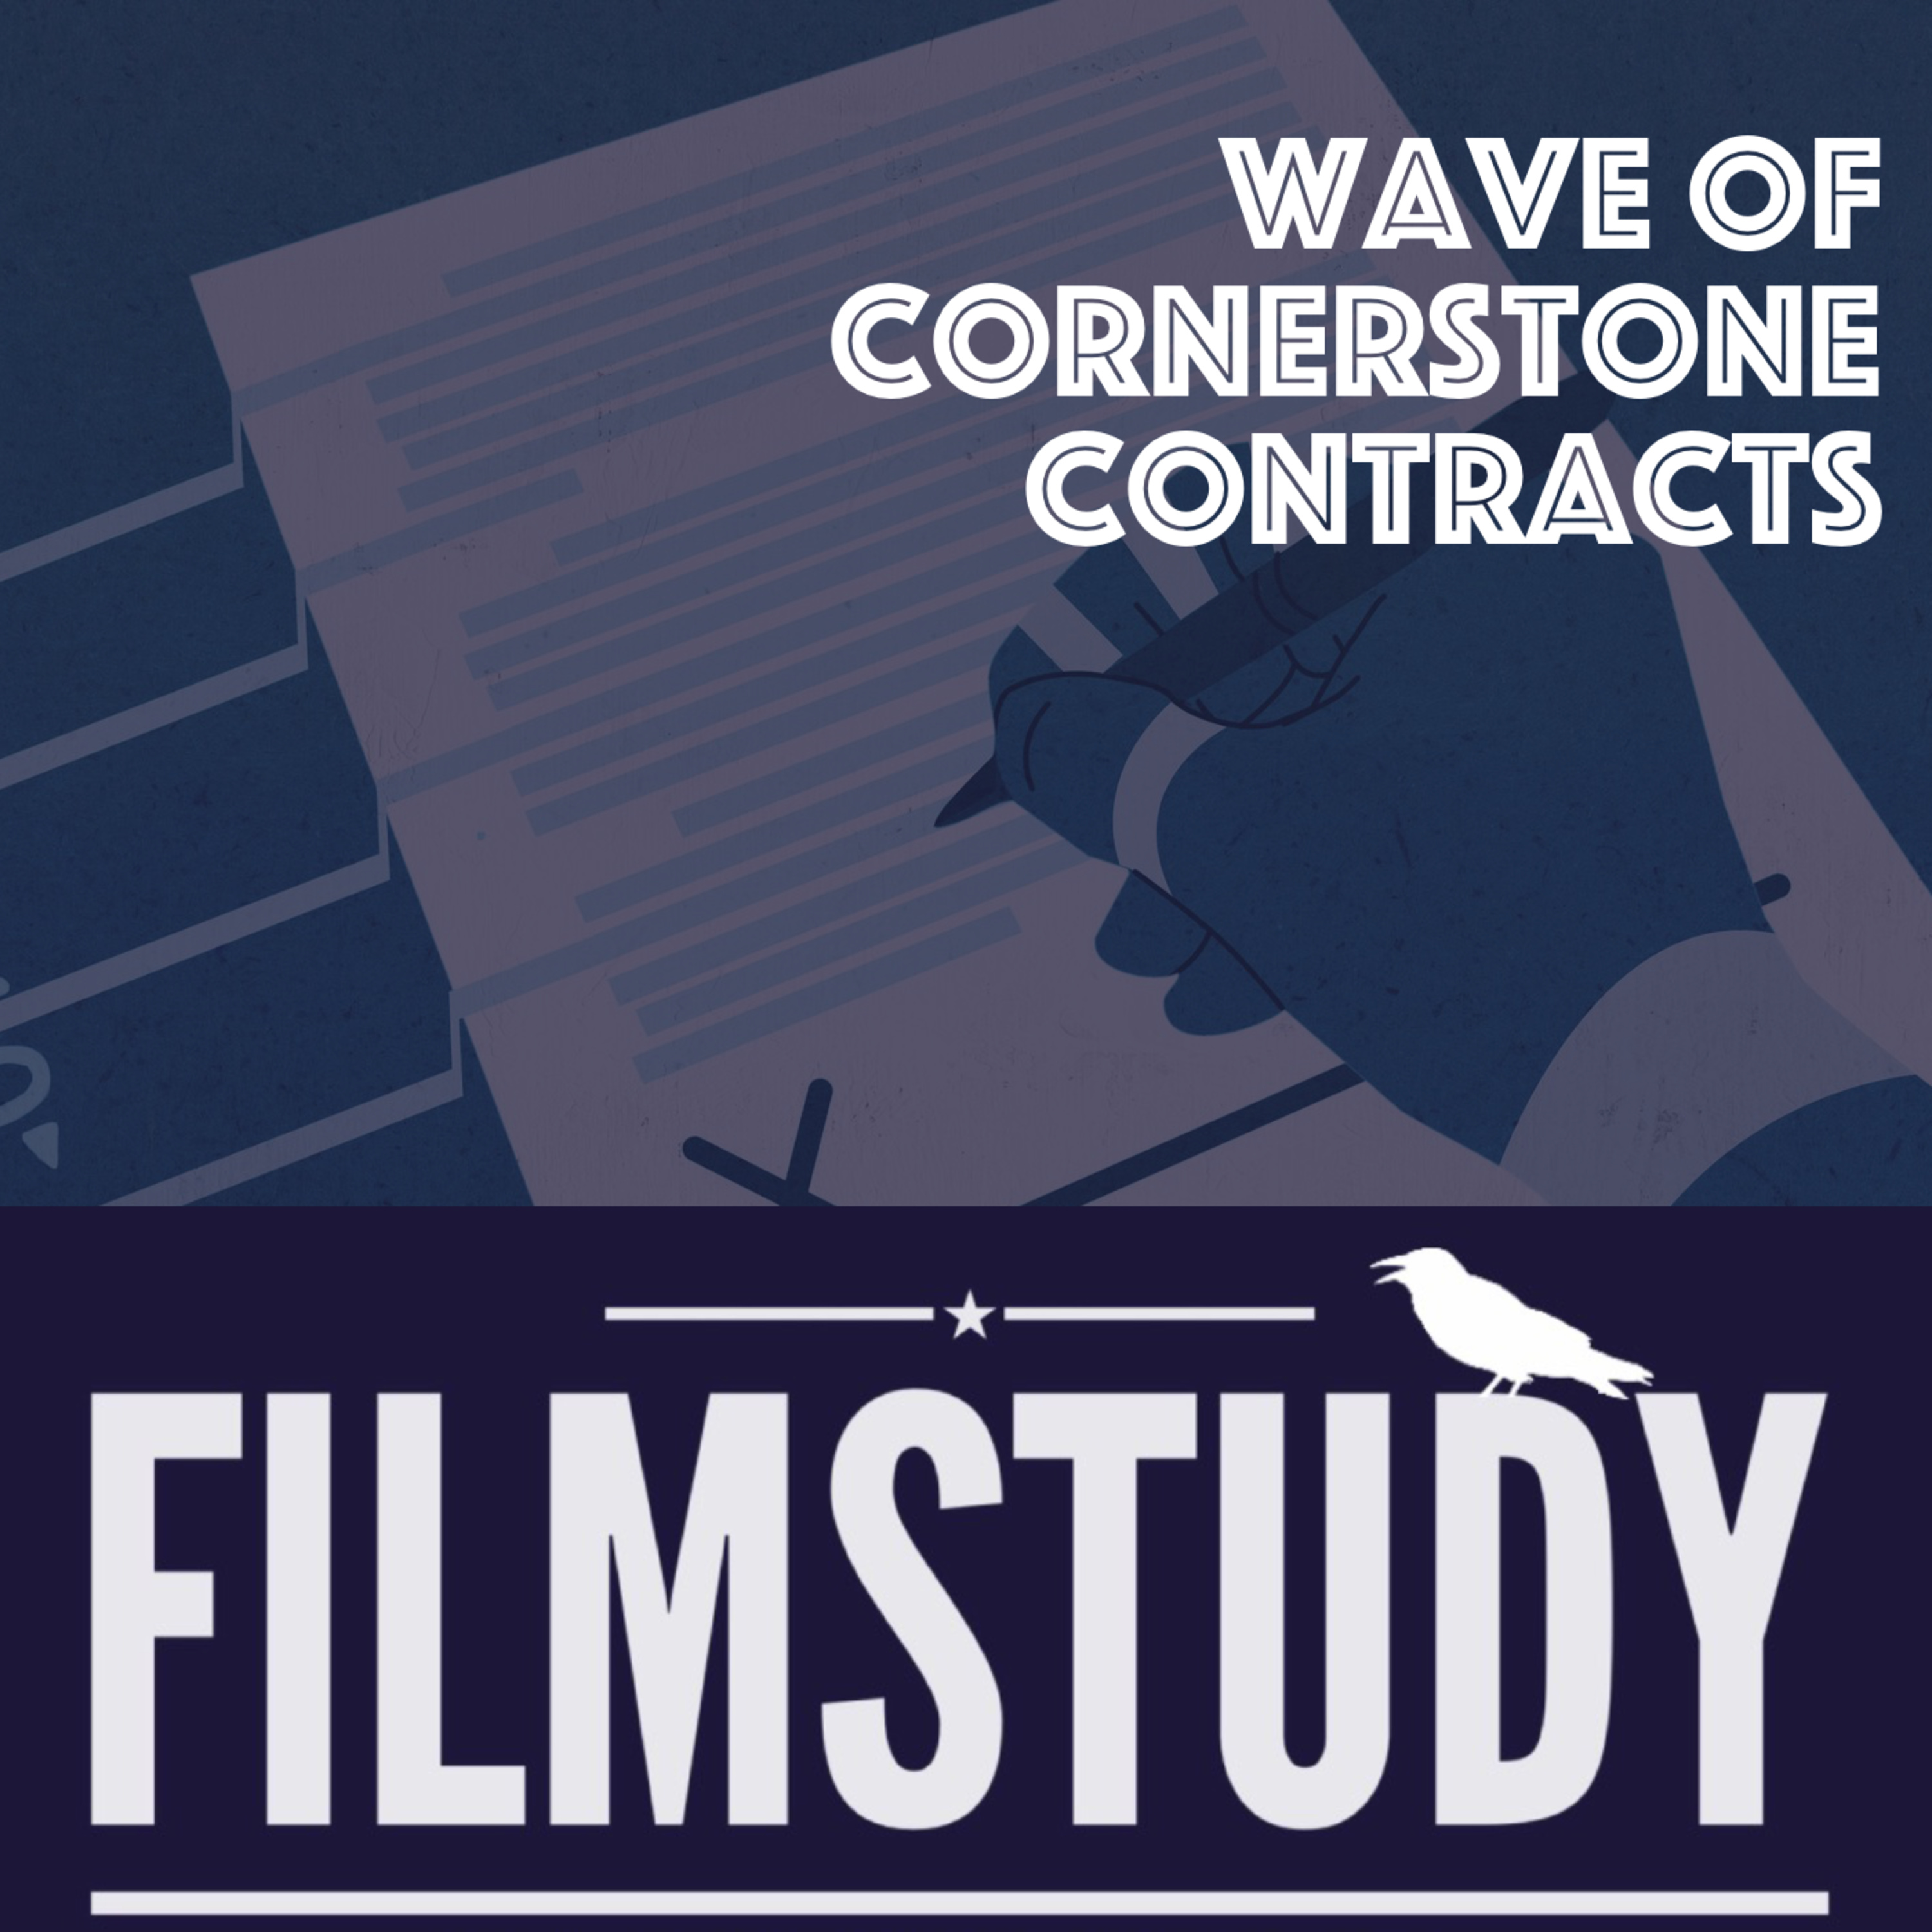 Wave of Cornerstone Contracts